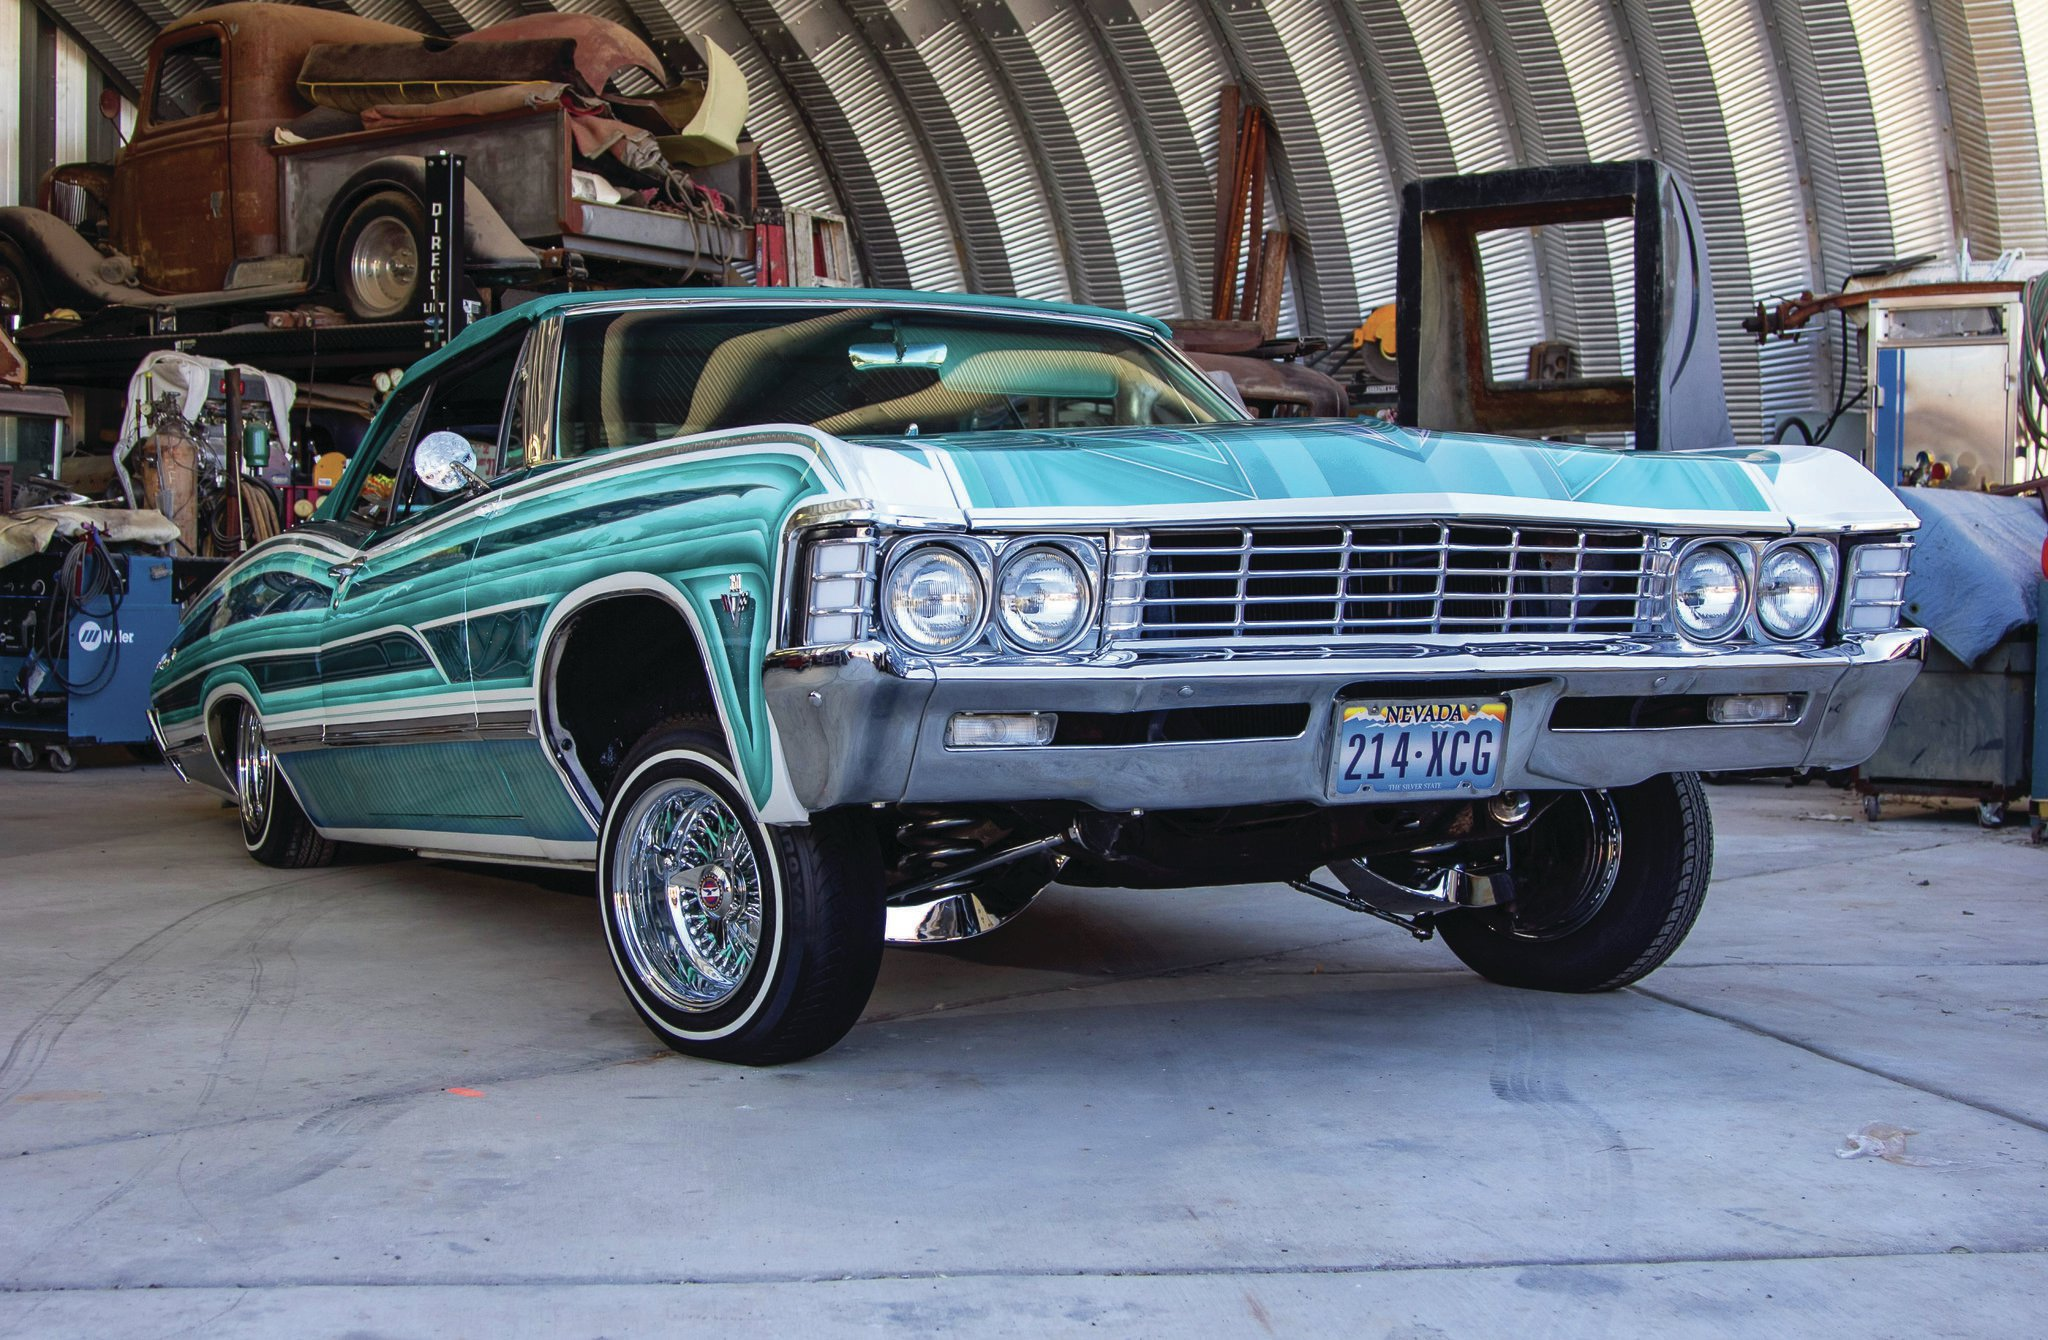 1967 chevrolet impala convertible - a '67 street player in